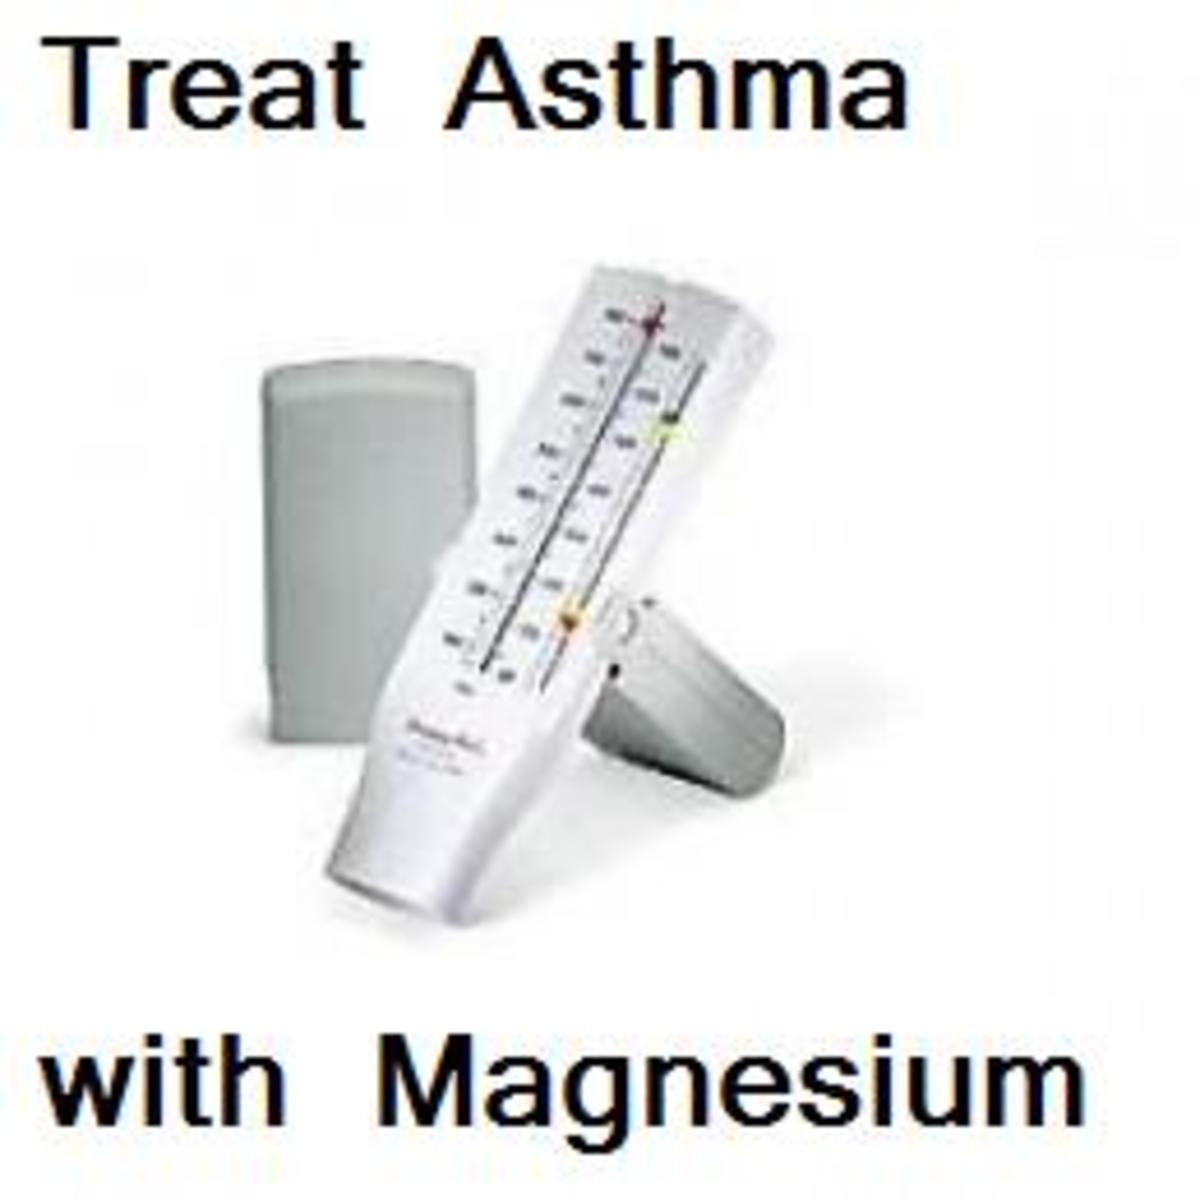 This Peak Flow Meter may give you better results when you treat your asthma with magnesium.